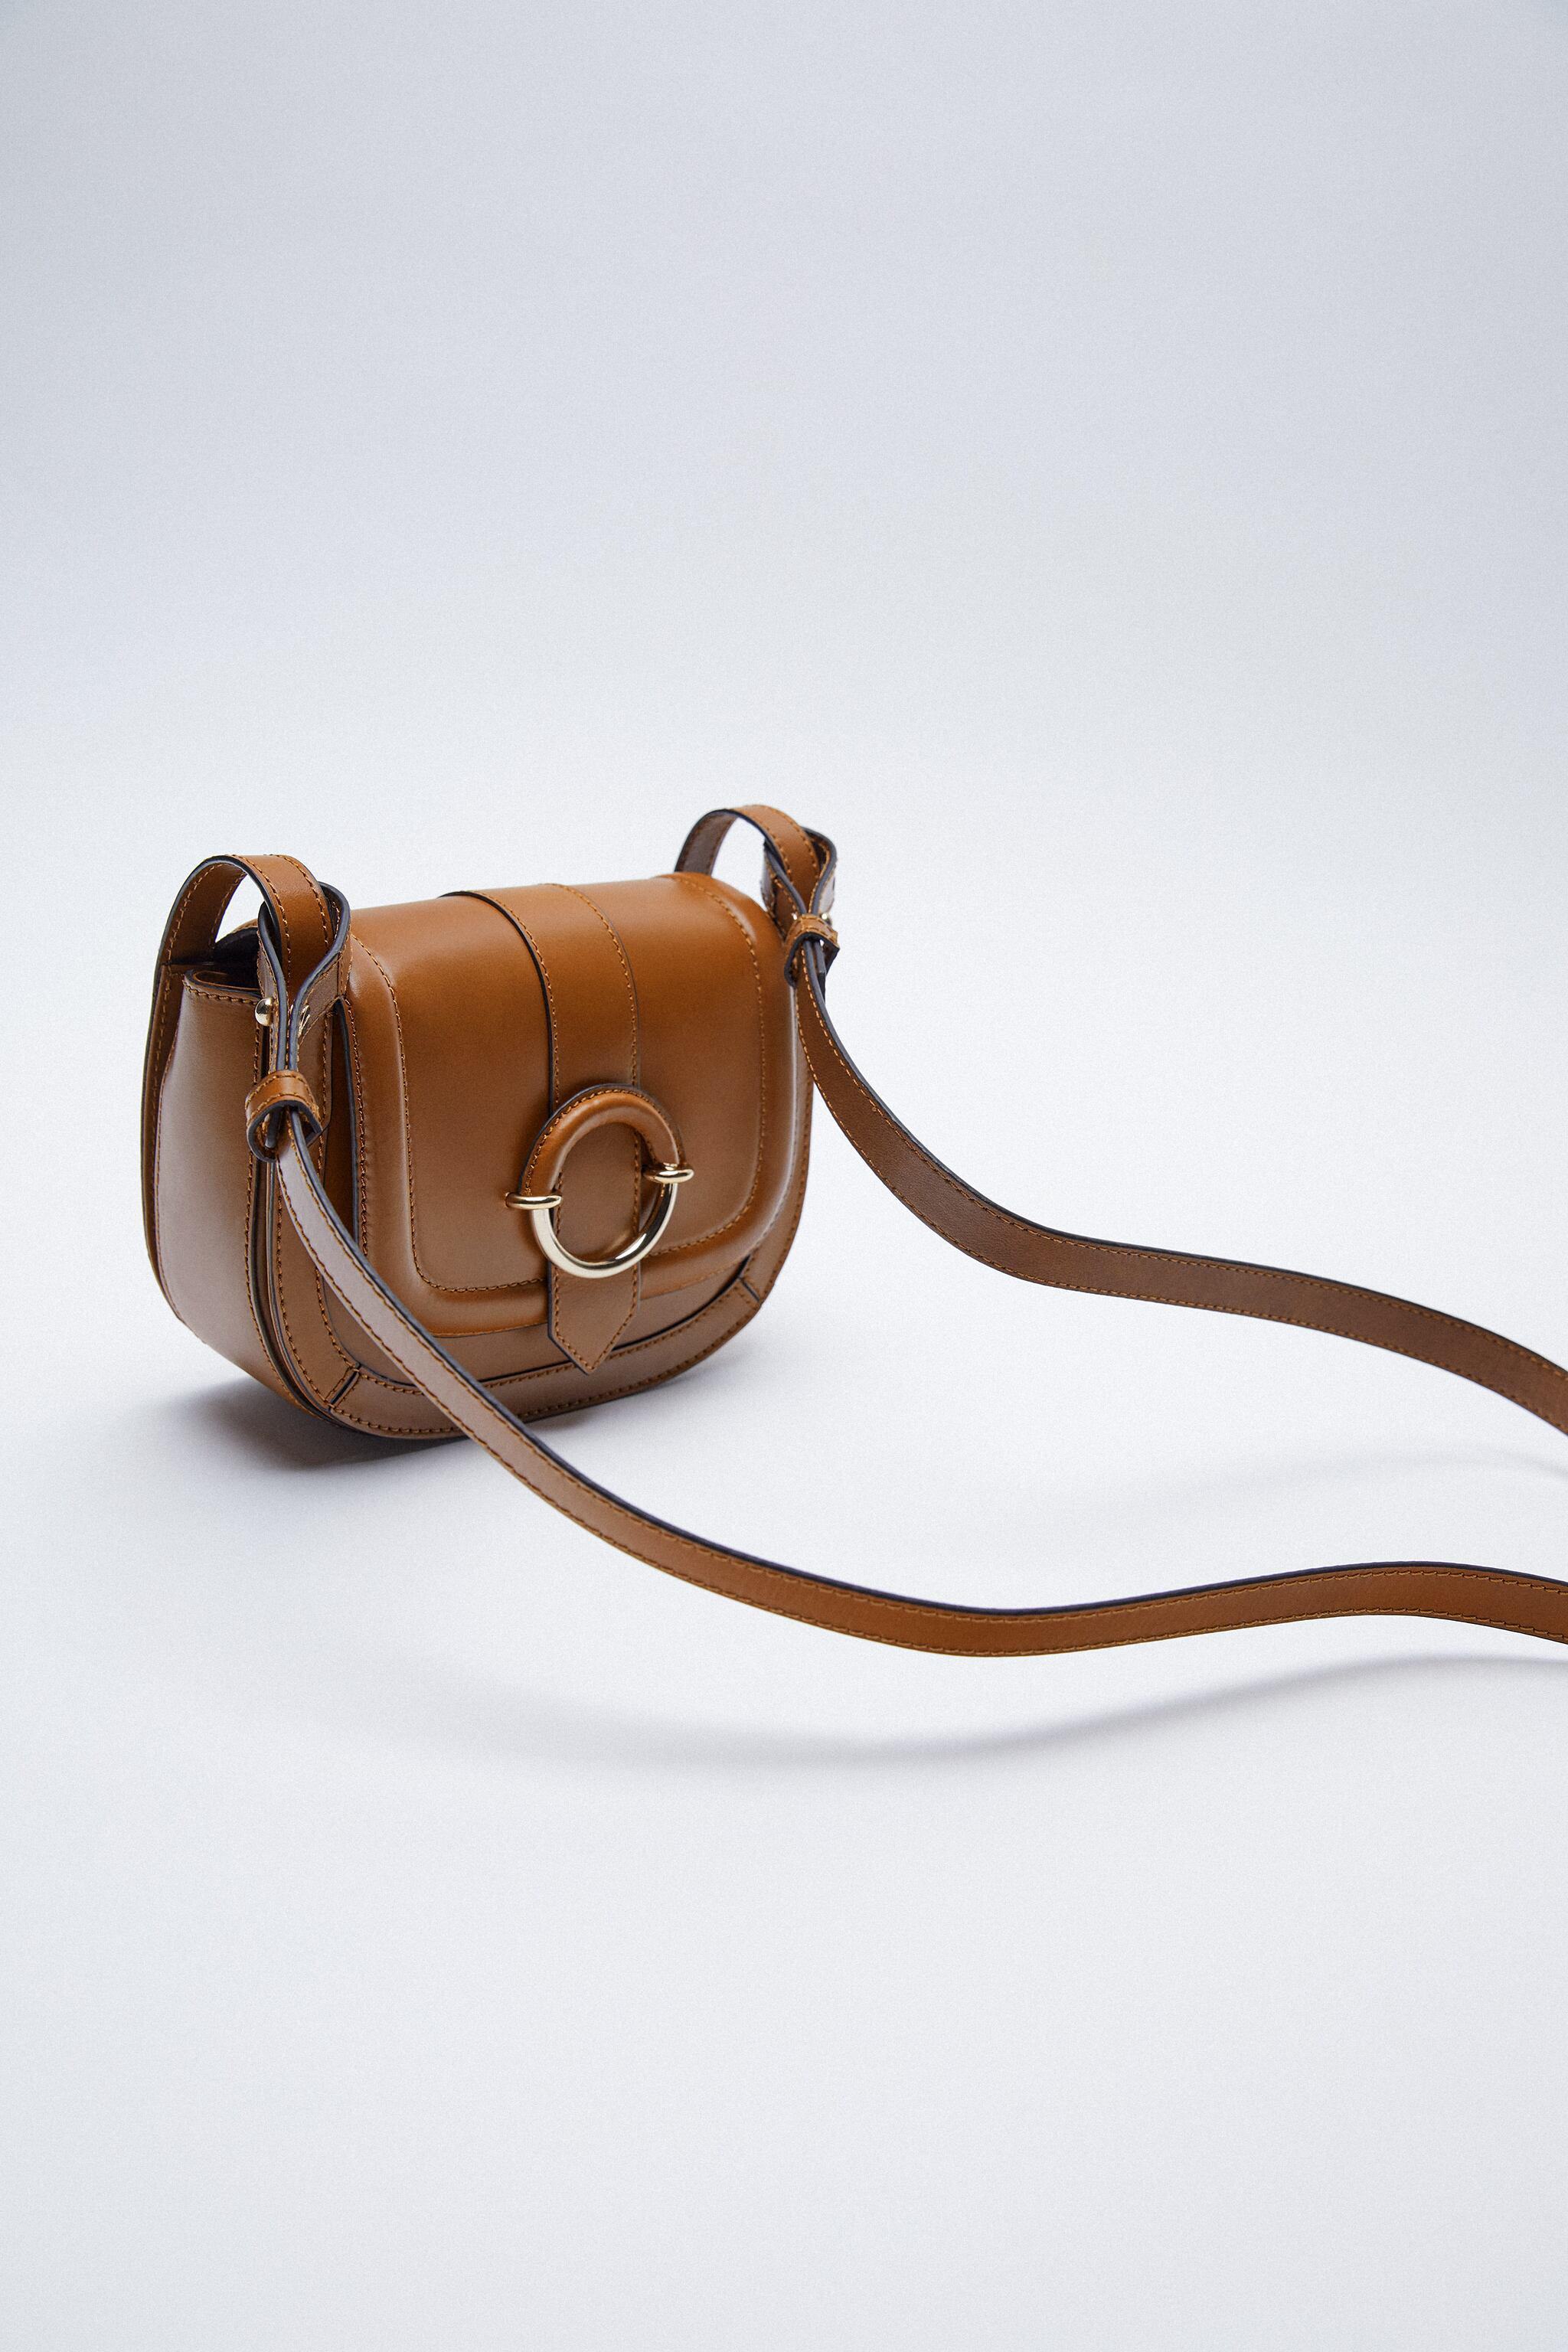 OVAL LEATHER CROSSBODY BAG WITH BUCKLE 2